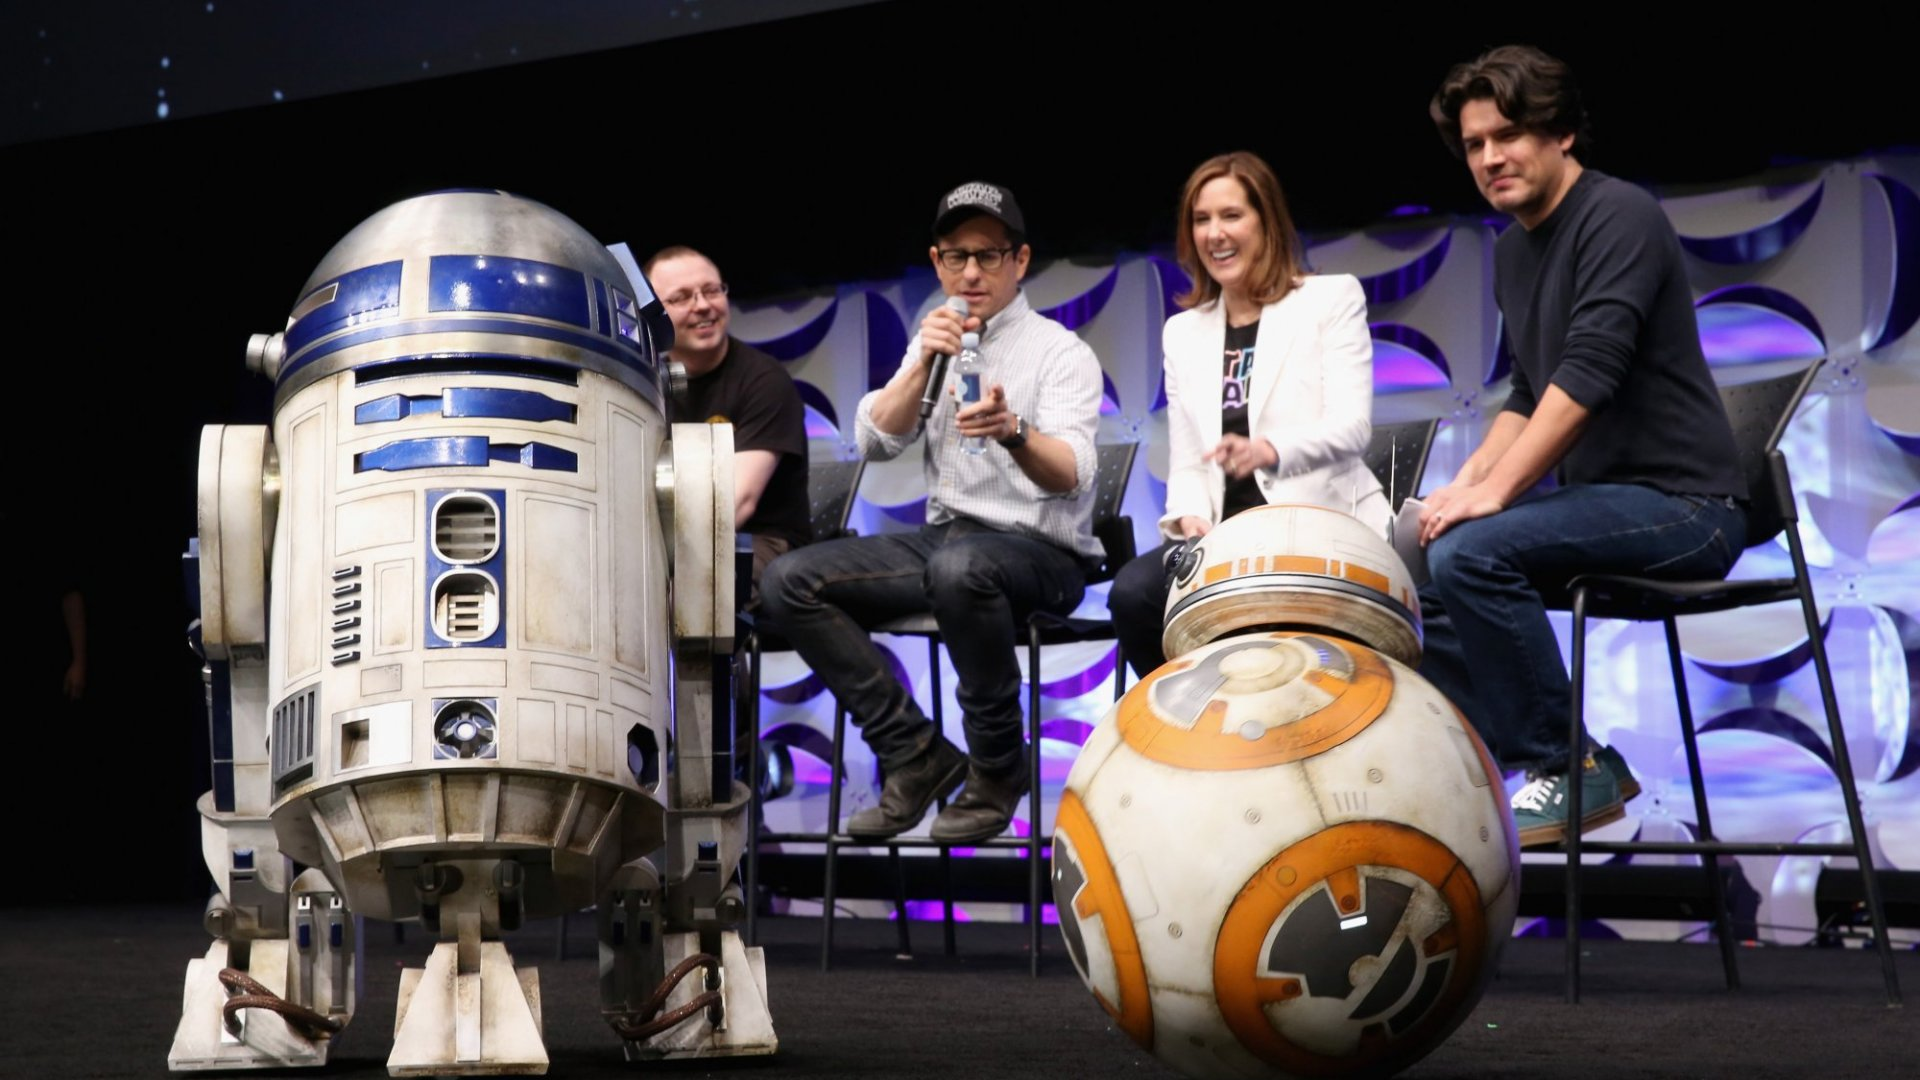 What Entrepreneurs Can Learn From 'Star Wars'